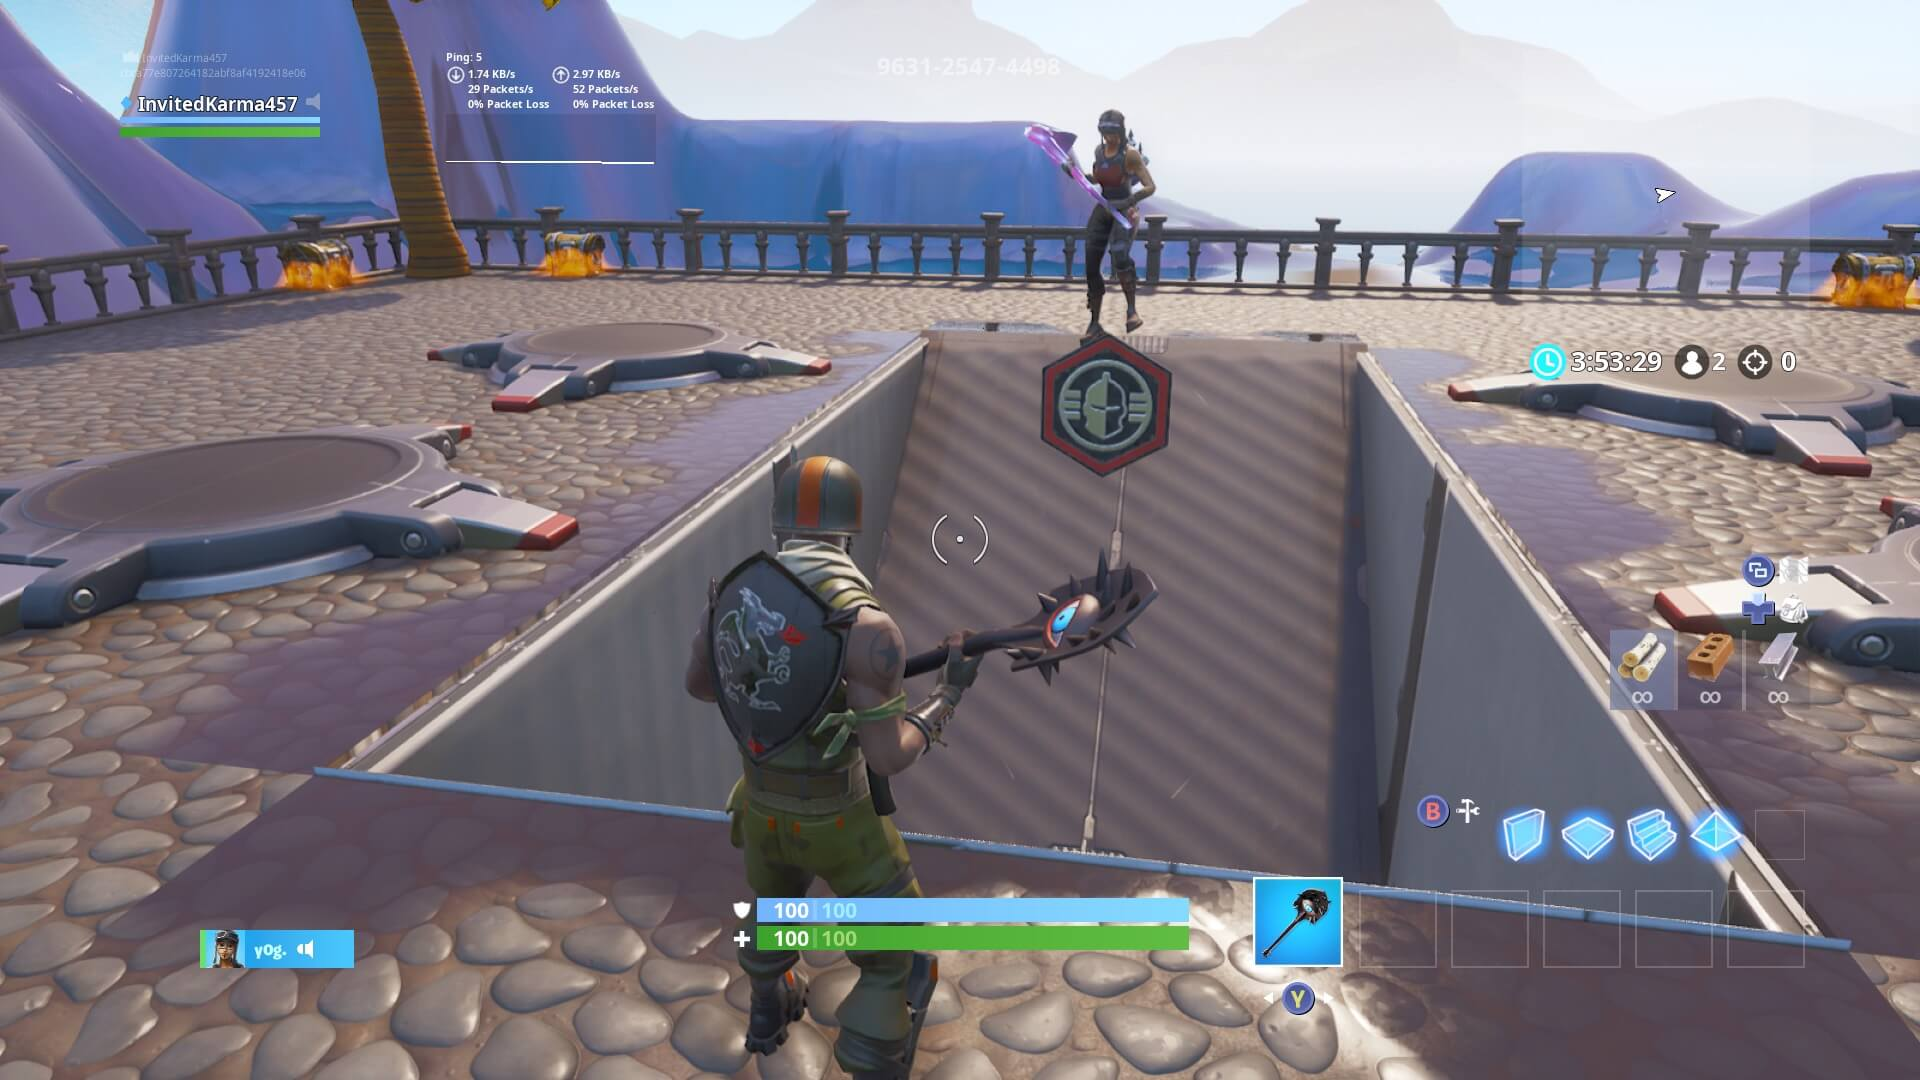 ⚡ Creative codes fortnite 1v1 | Map with Ready  2019-02-25